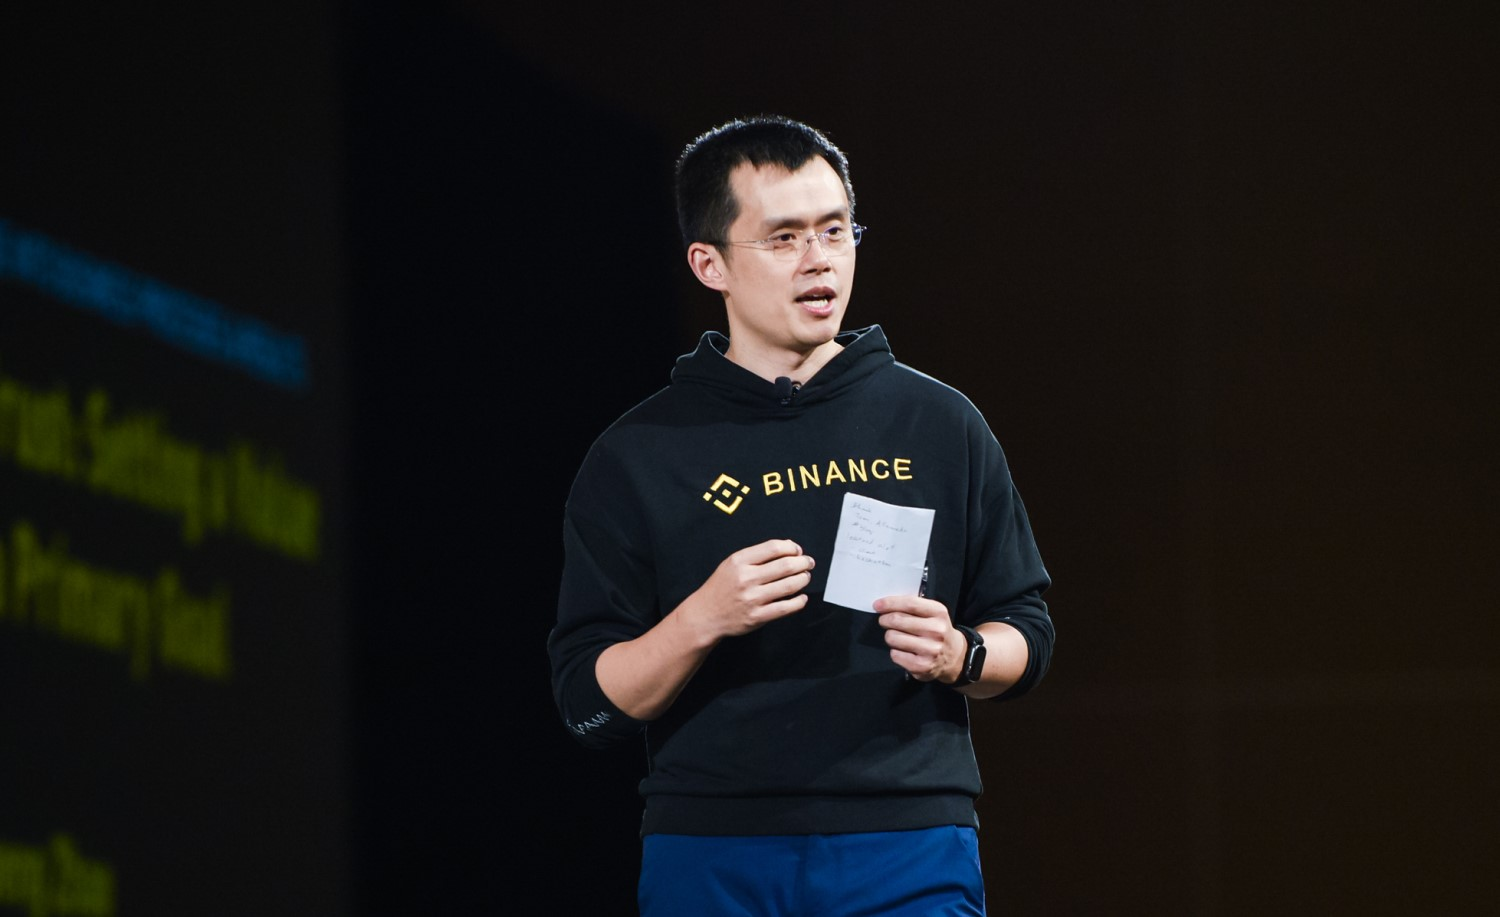 Binance Rolling Out Crypto Card for EU, UK Markets - CoinDesk